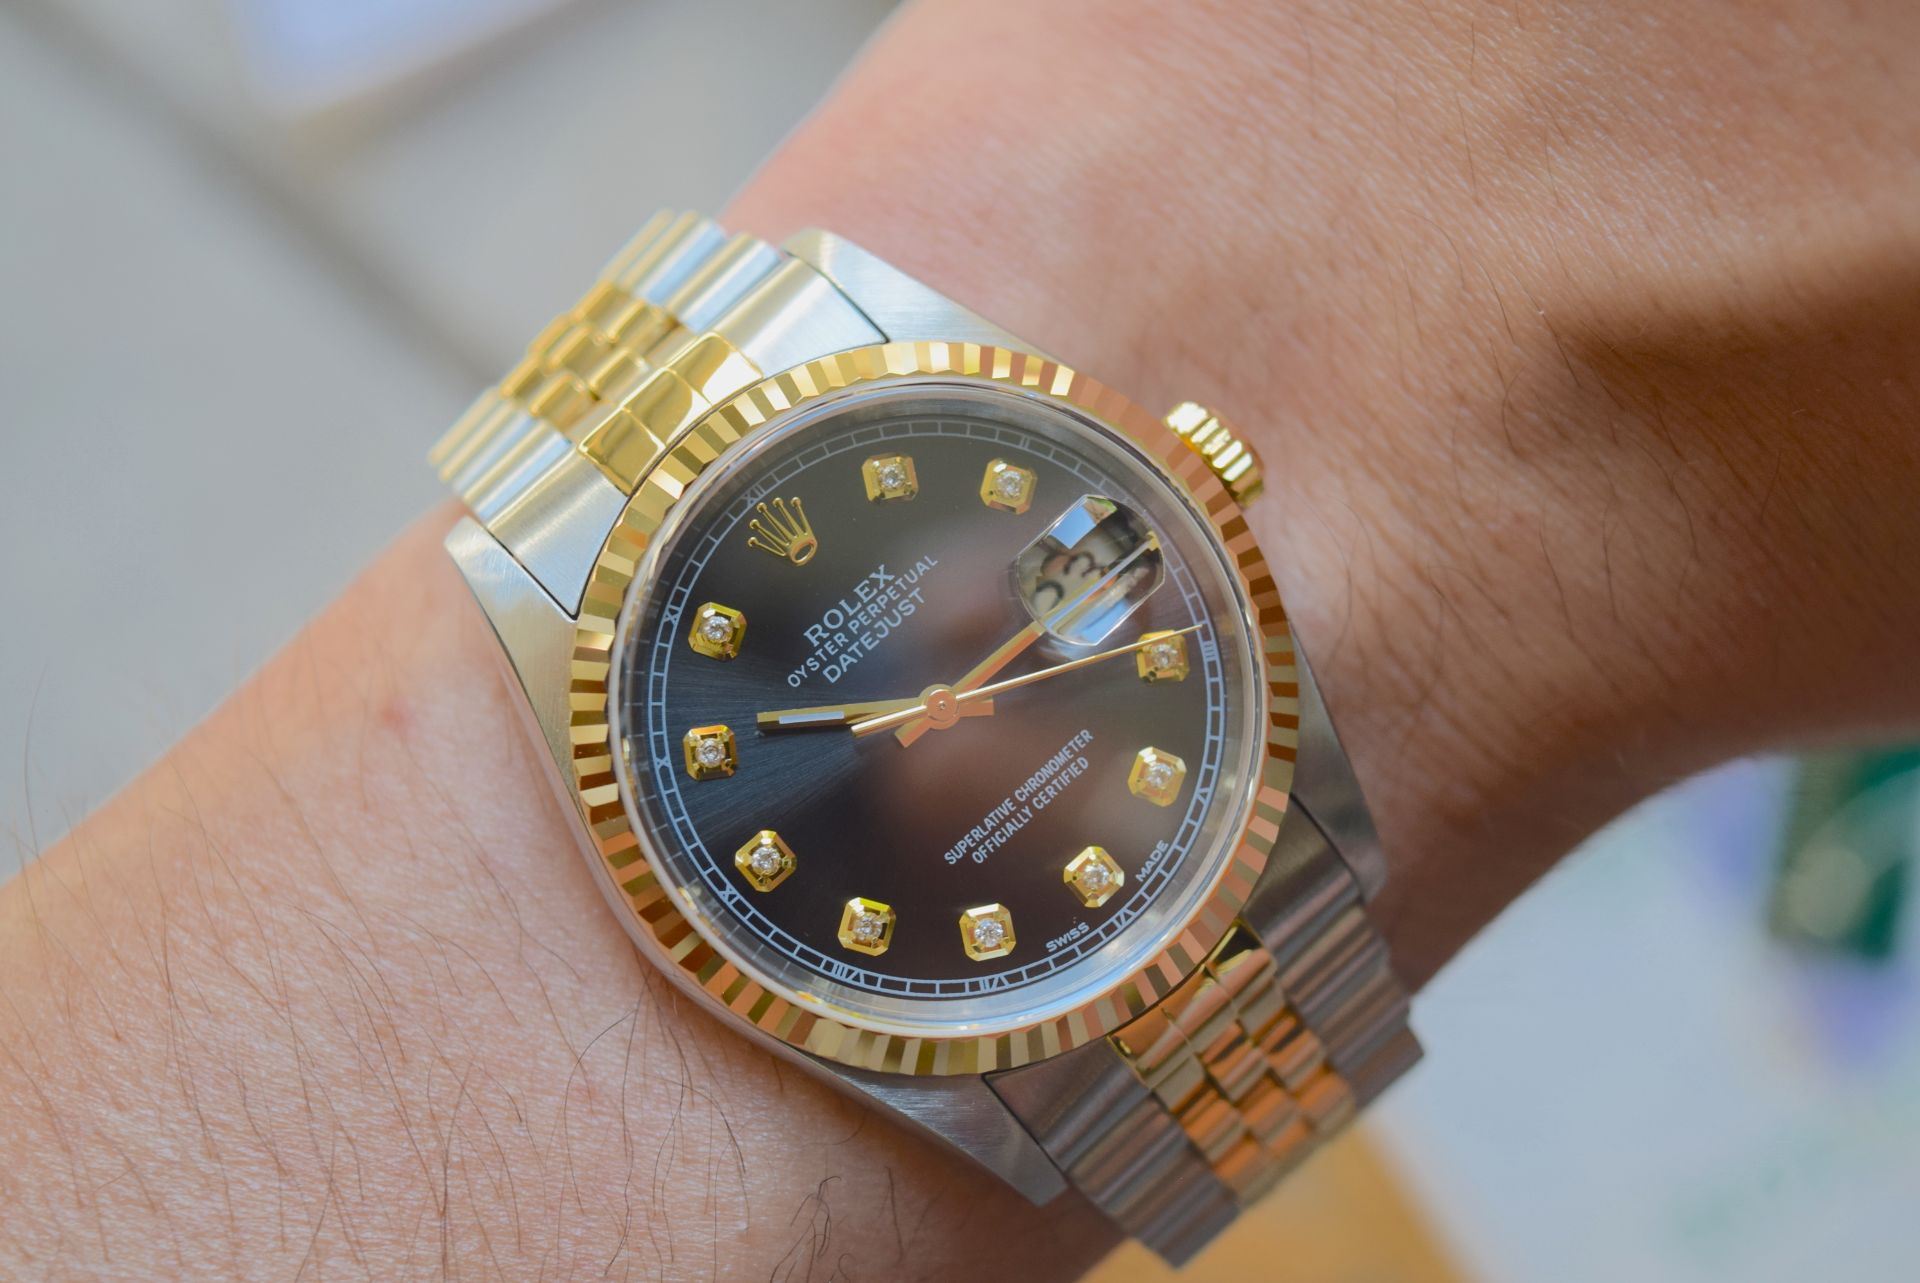 18CT GOLD/ STEEL ROLEX DATEJUST - 36MM, MENS (COMPLETE SET INC BOX, PAPERS, TAGS ETC) - Image 24 of 25